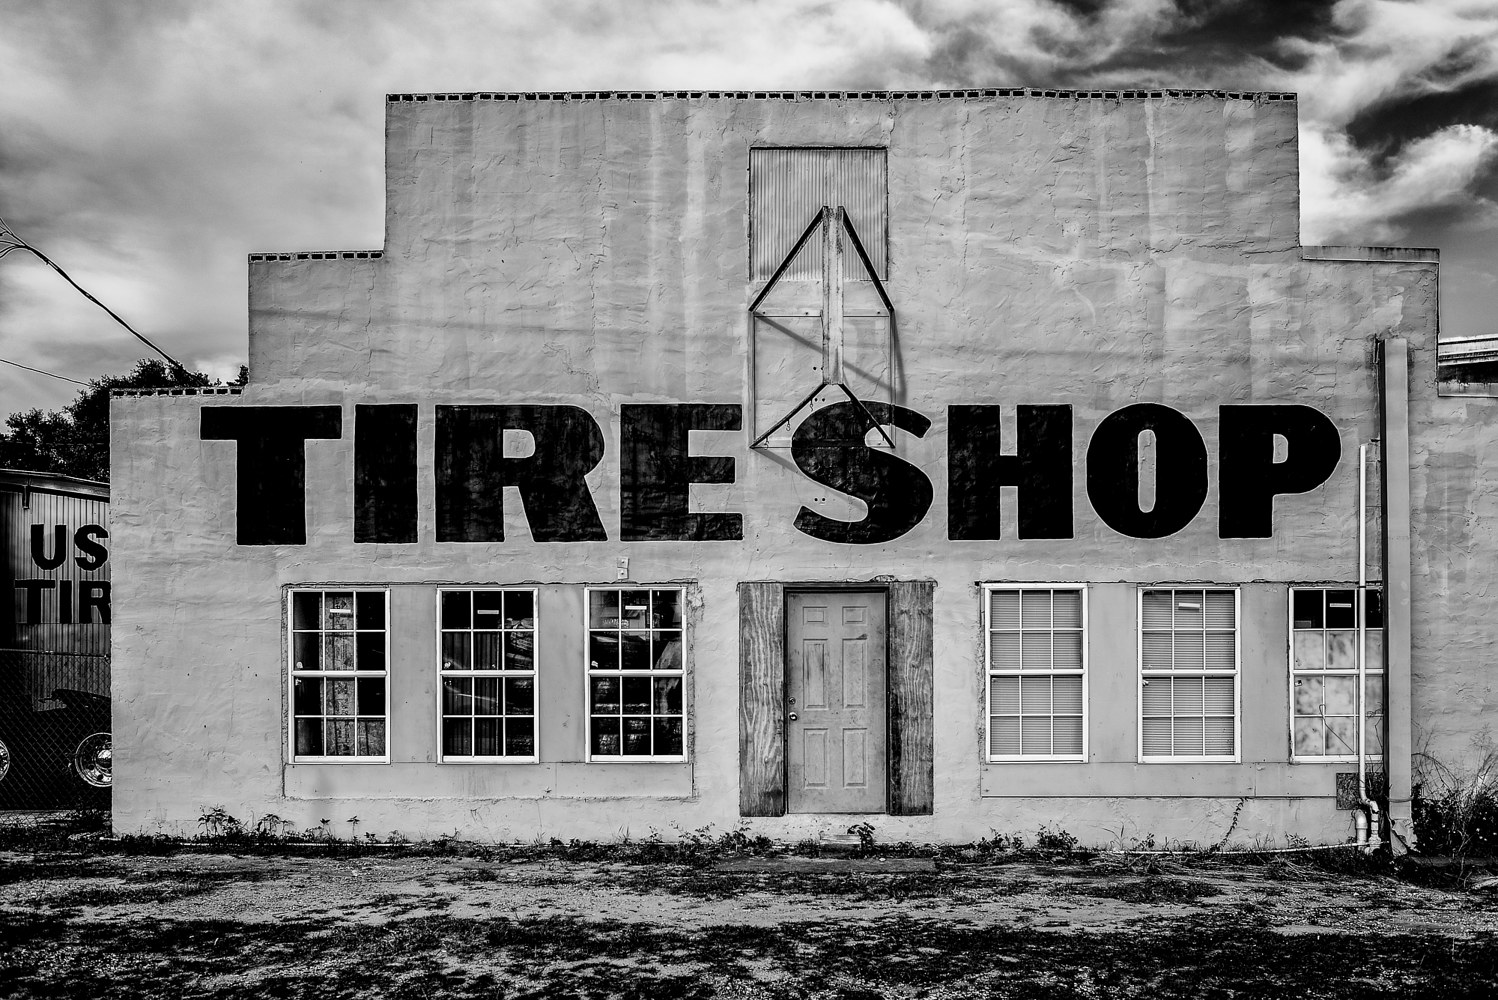 Tire Shop - Davenport FL  (PL54_7393BW) by Gary Jones